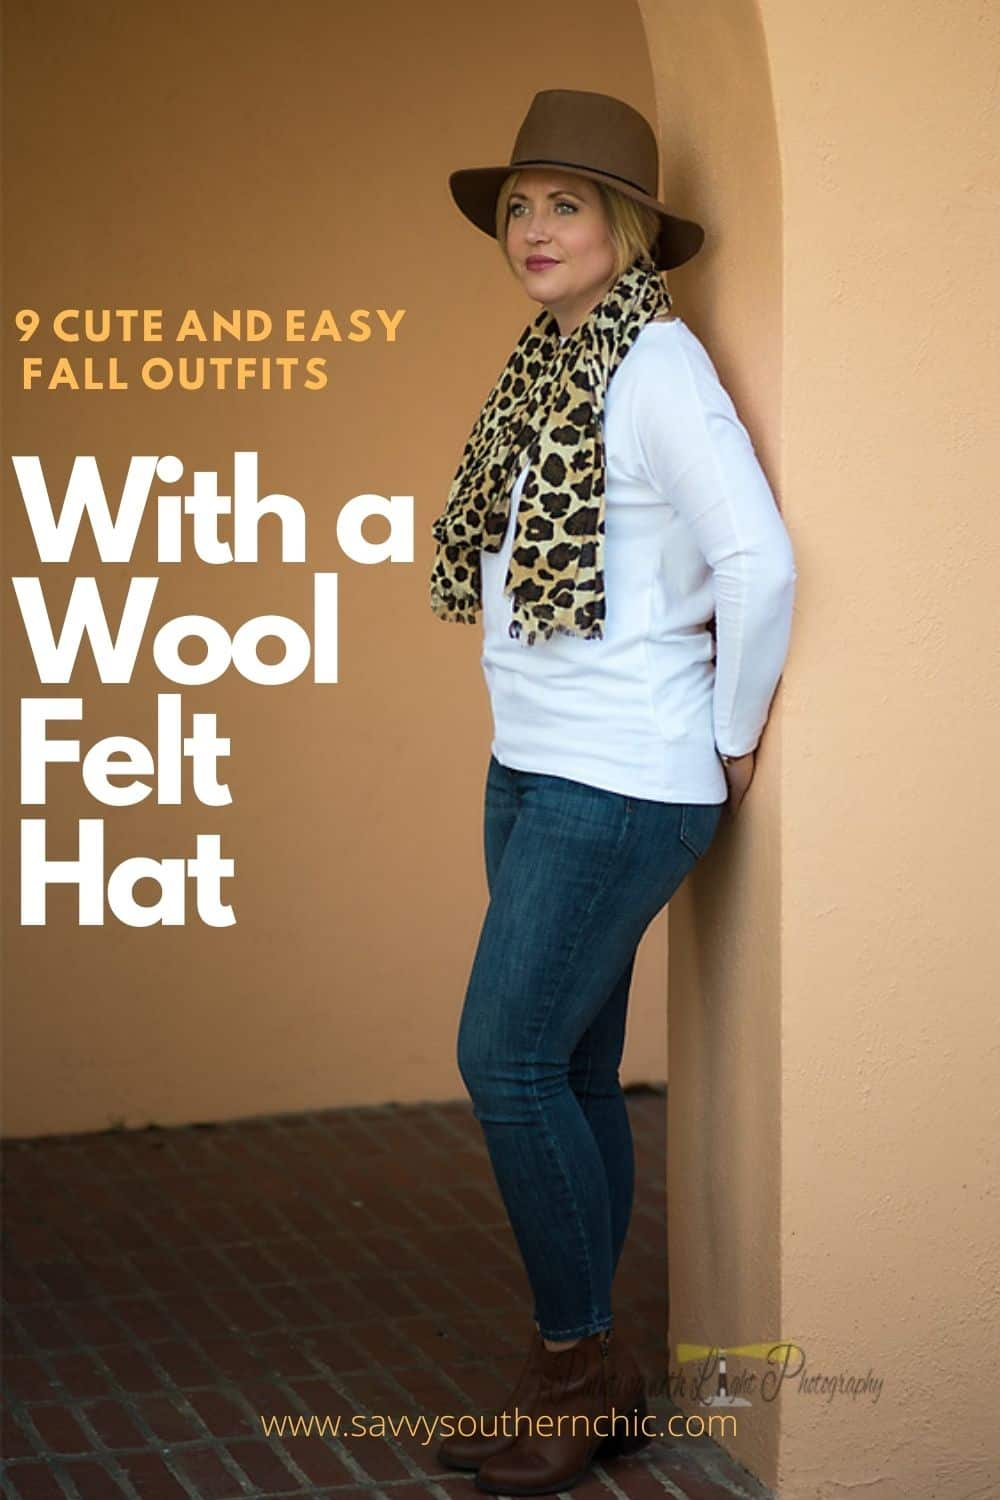 9 Cute and Easy Fall Outfits with a Wool Felt Hat